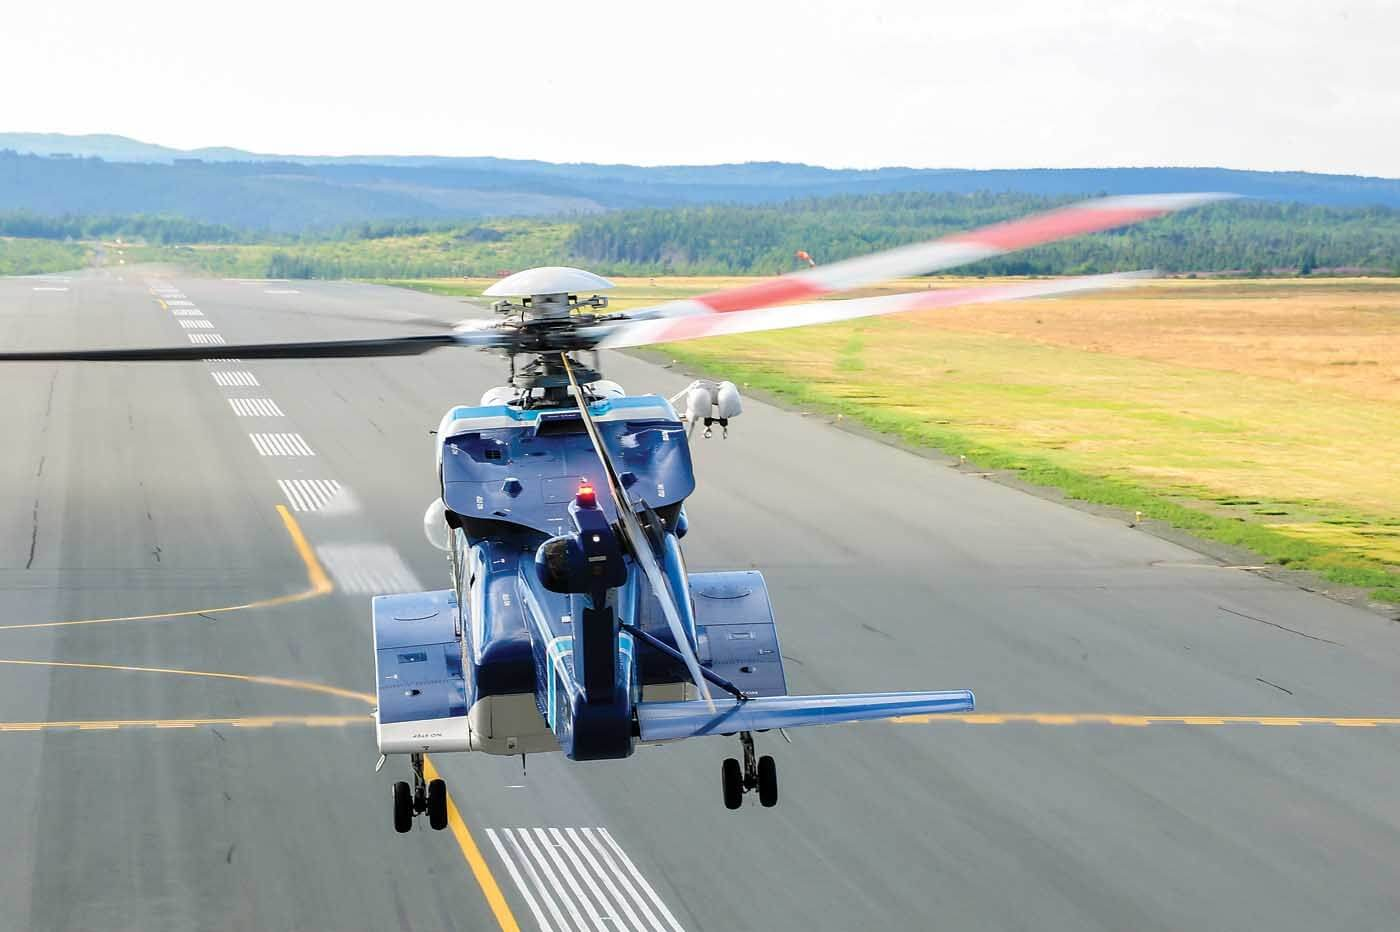 A Cougar Helicopters Sikorsky S-92, specially equipped for search-and-rescue operations, takes off from St. John's International Airport in Newfoundland. Mike Reyno Photo